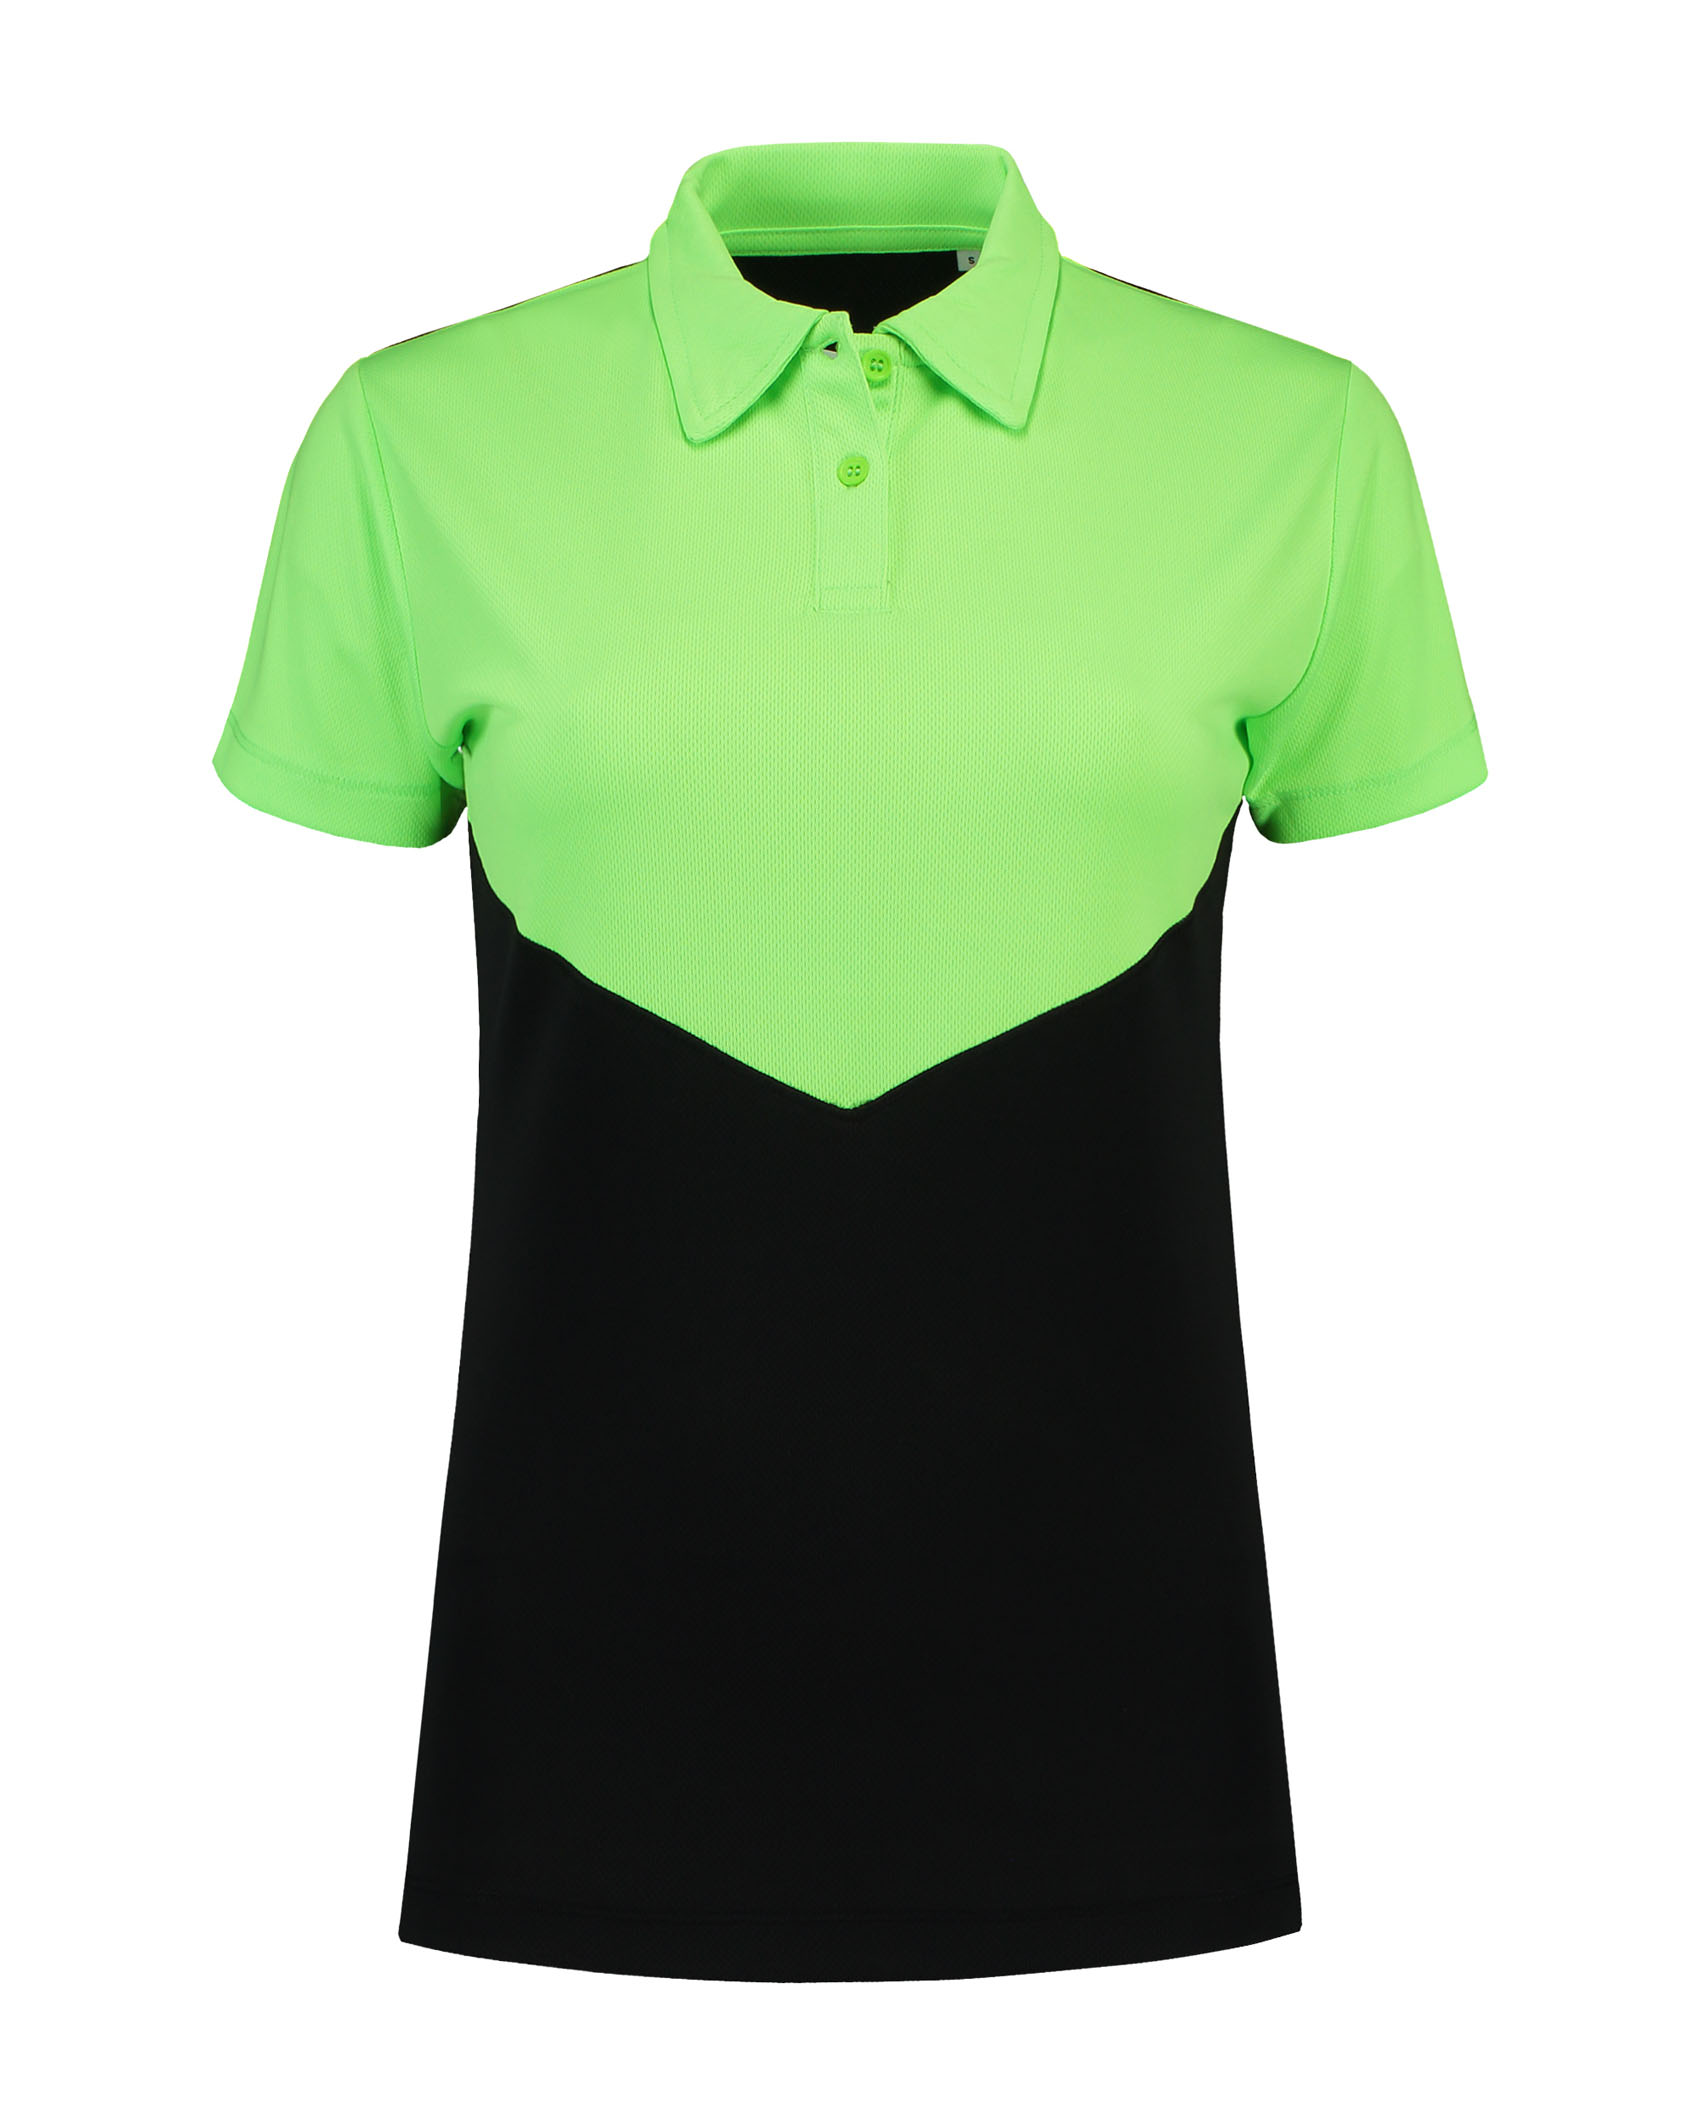 L&S Contrast Sports Poloshirt for her